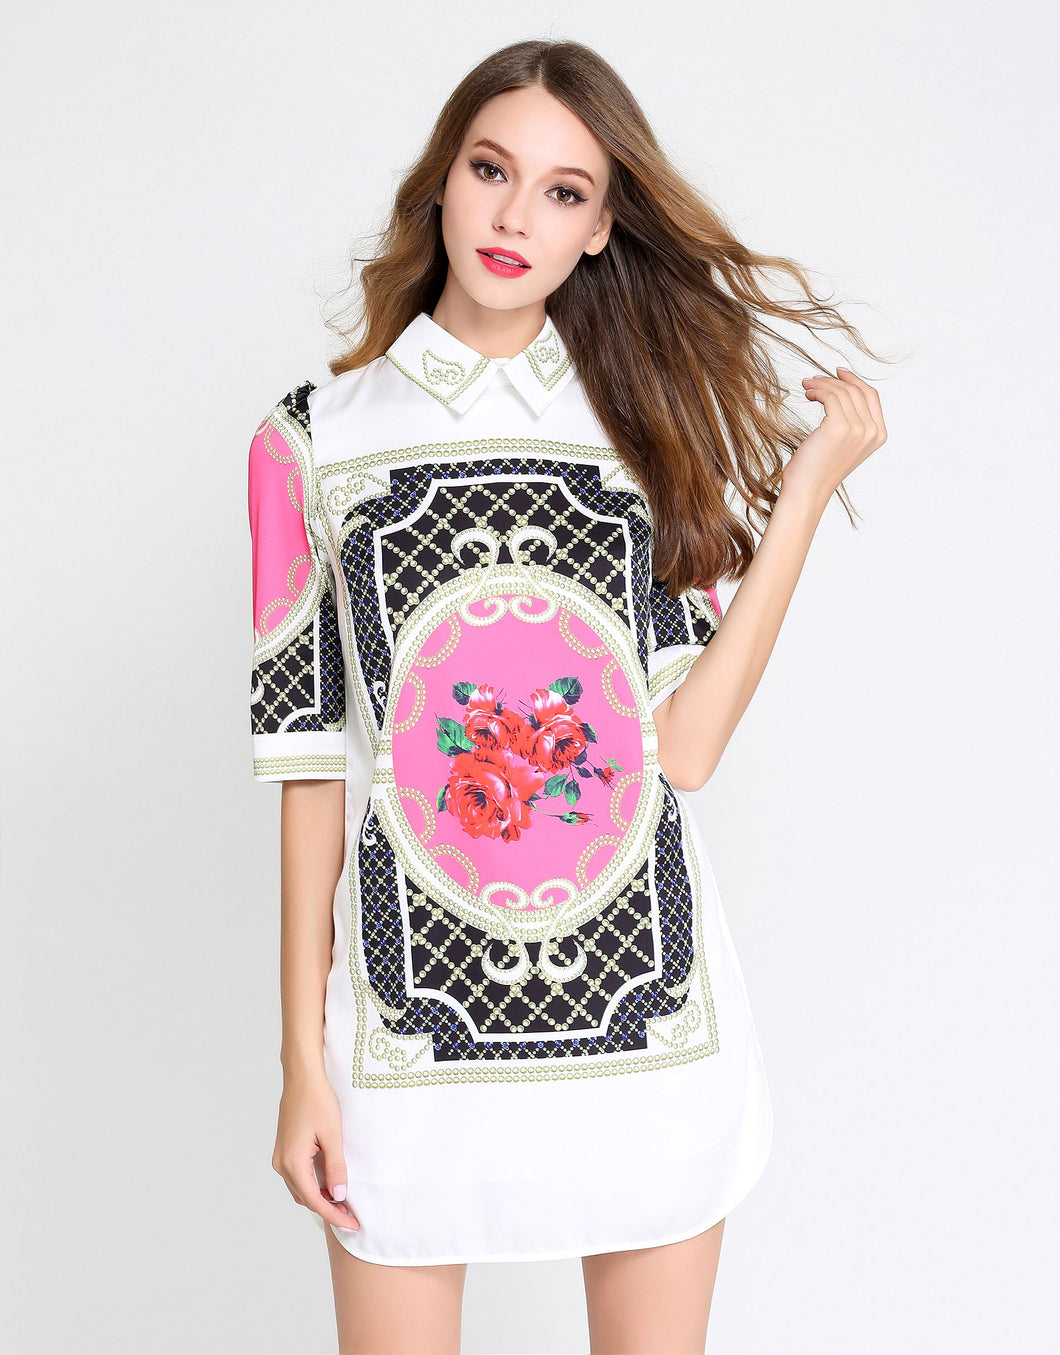 White collared shirt dress with Rose tiles